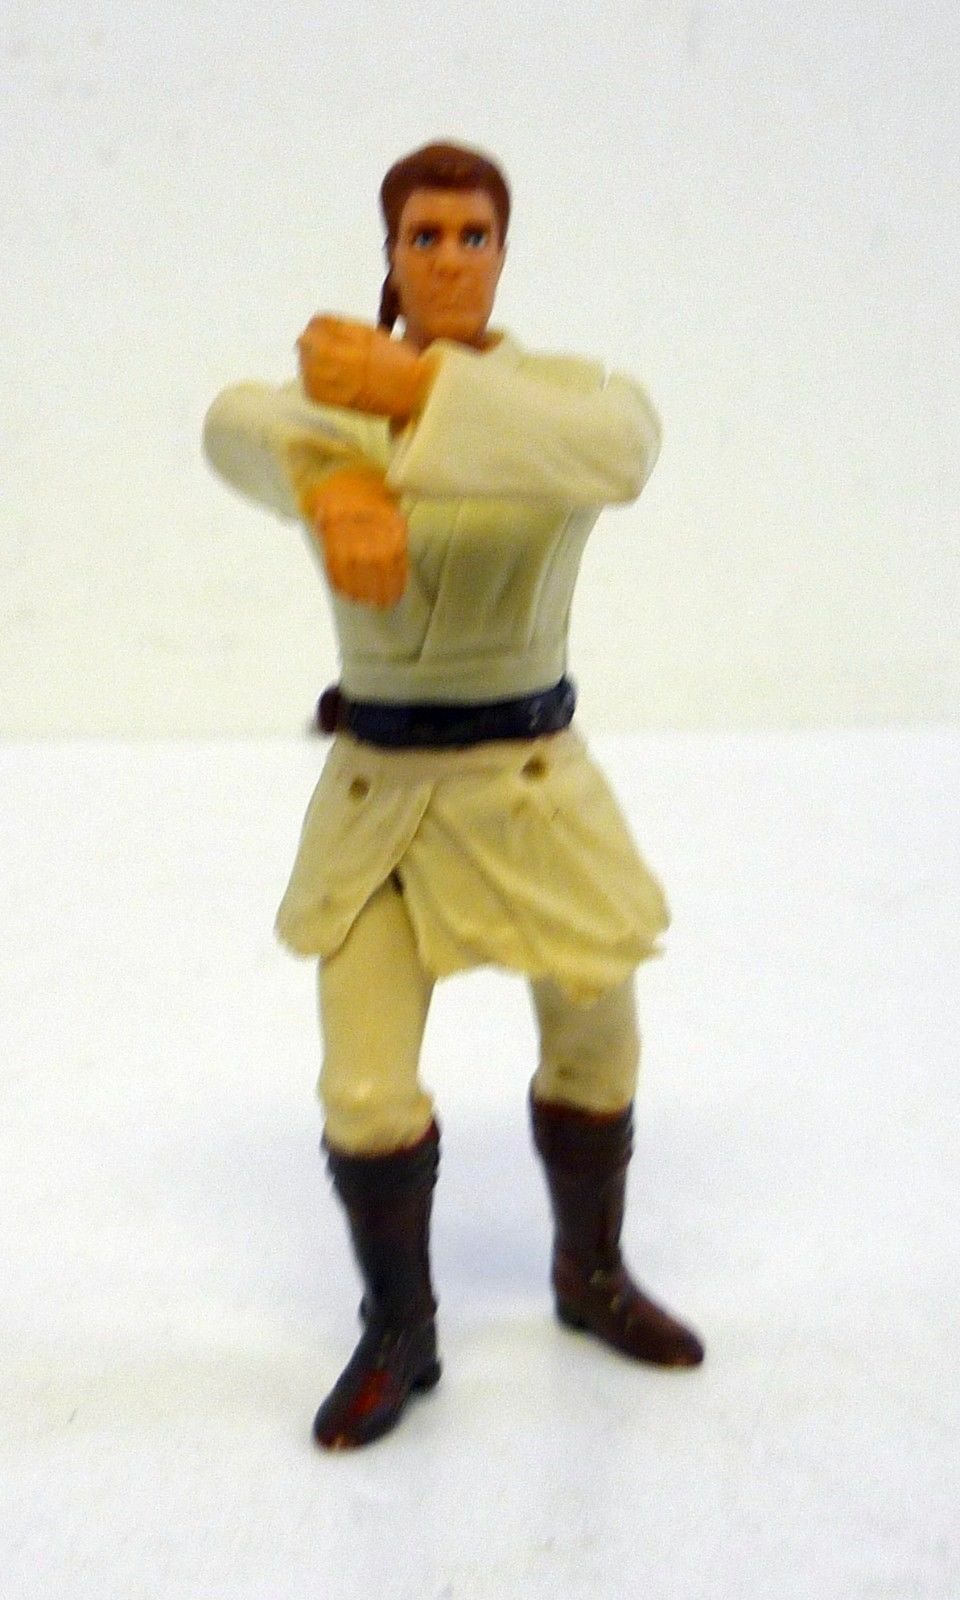 StarWars figurine : Star Wars Obi-Wan Kenobi Épisode I Action Figurine 1999